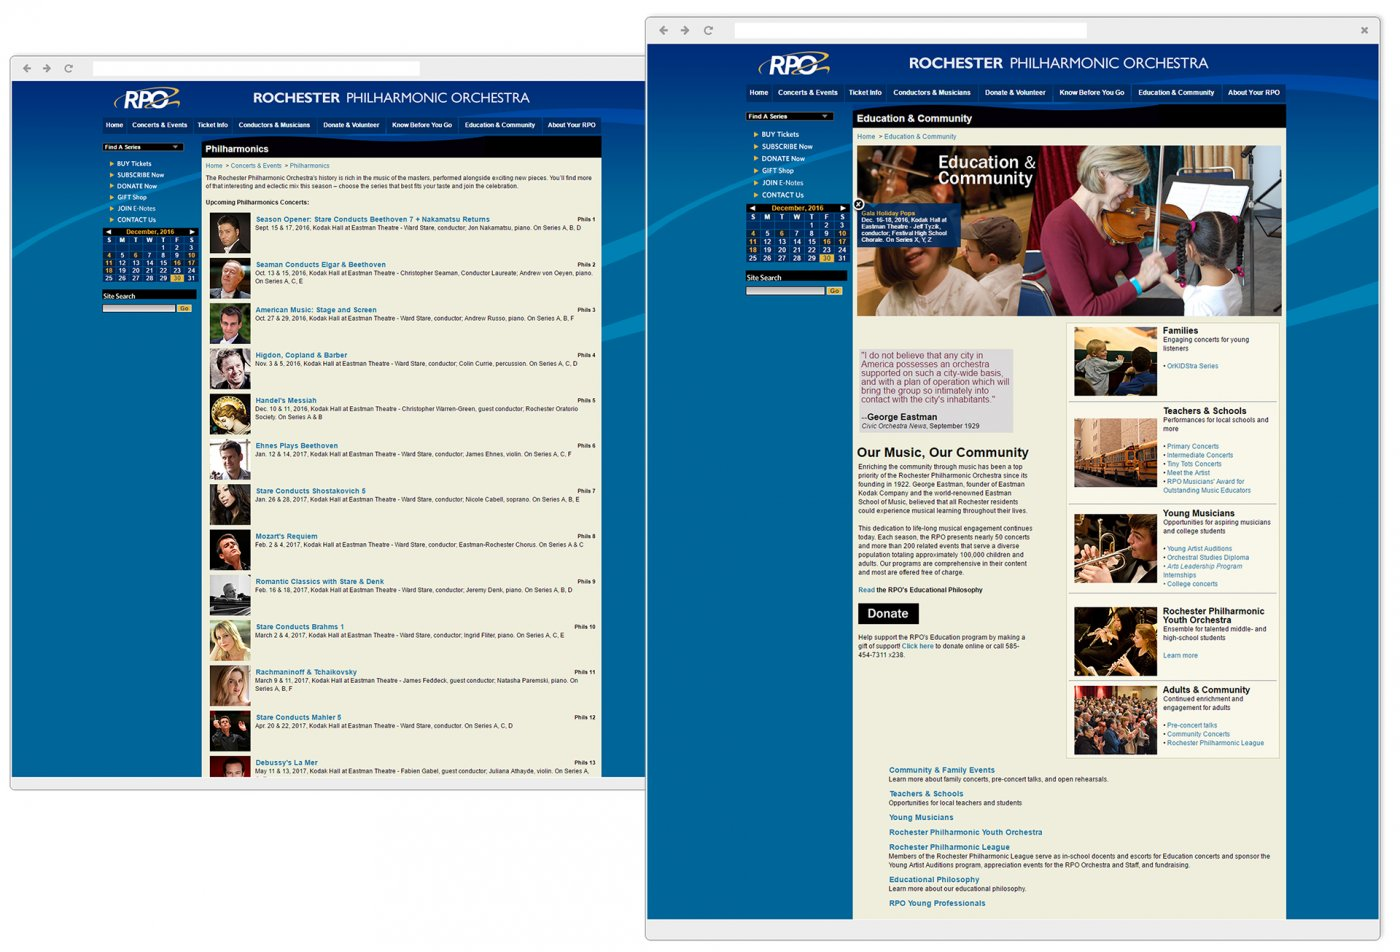 RPO Education & Community page & Philharmonics page